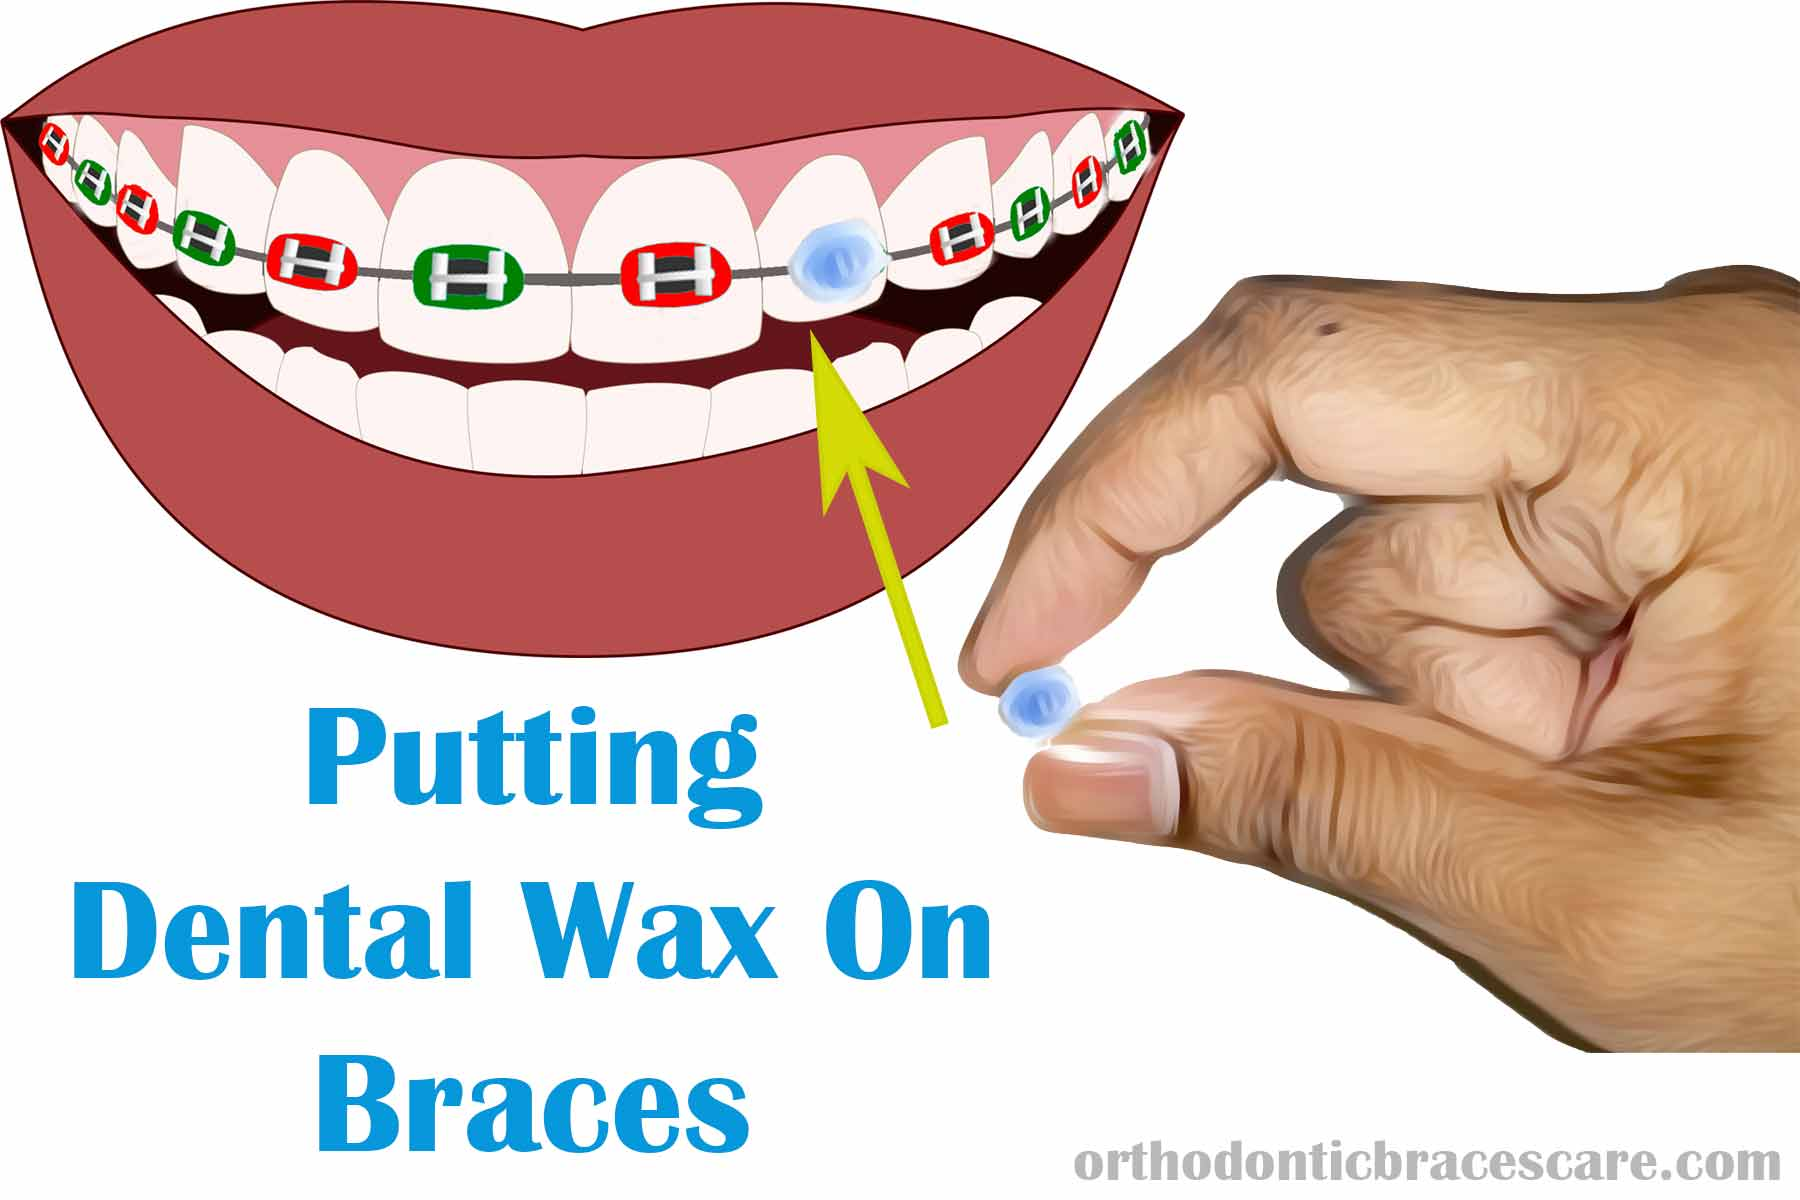 How Apply Dental Wax On Braces: Step-By-Step Guide ...